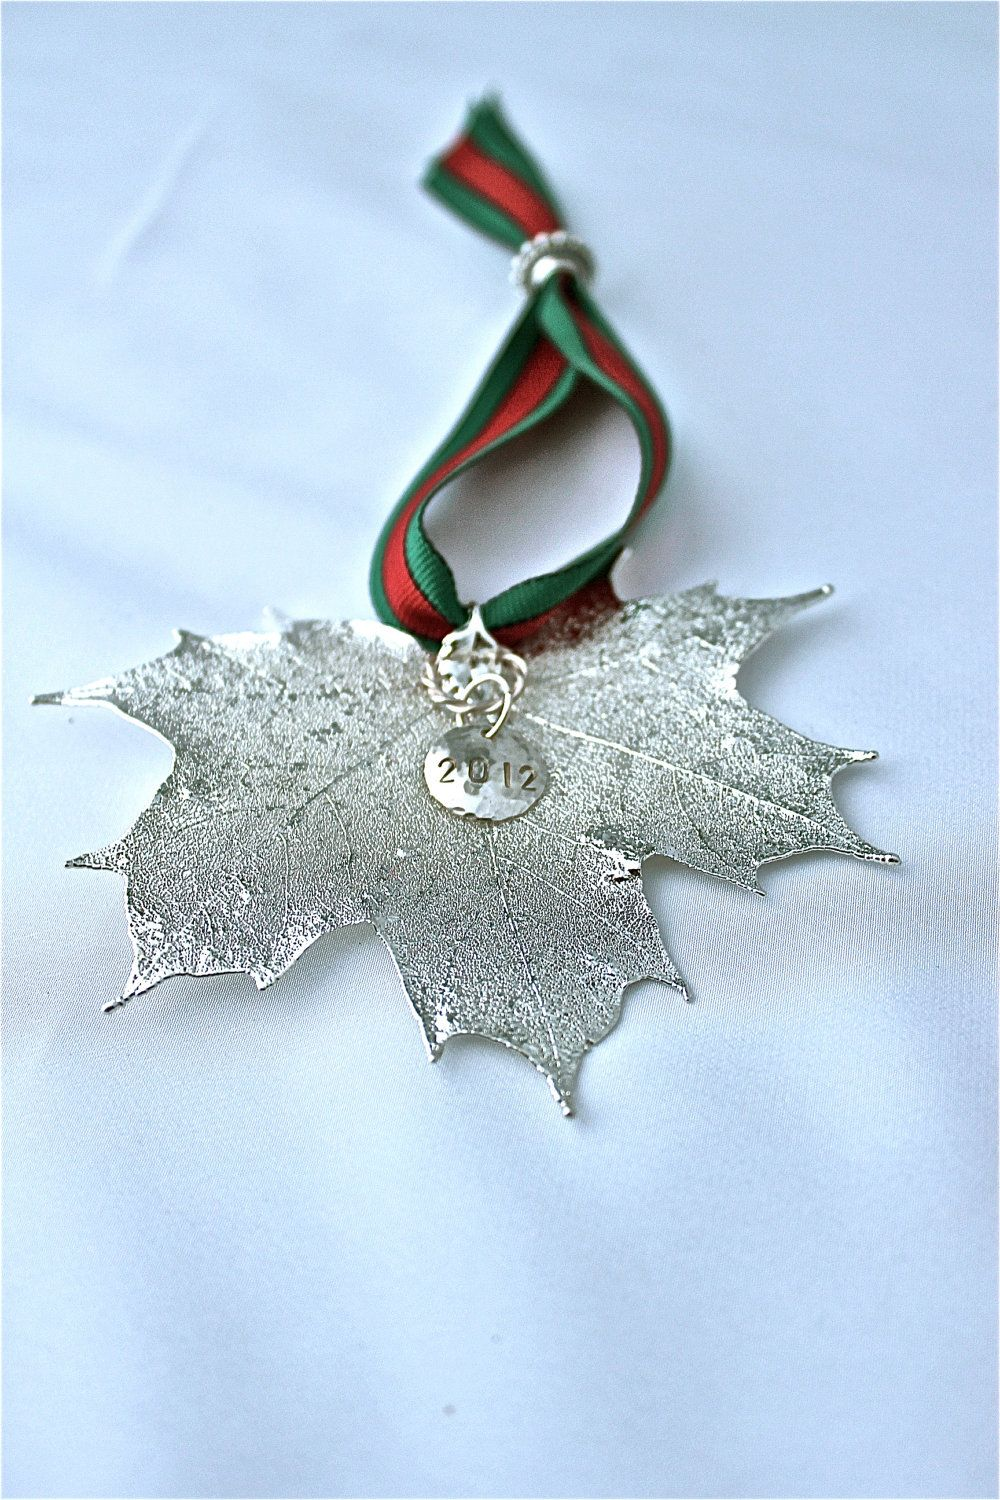 2012 Sterling Silver Plated Natural Maple Leaf Holiday or Christmas Ornament. $25.00, via Etsy.